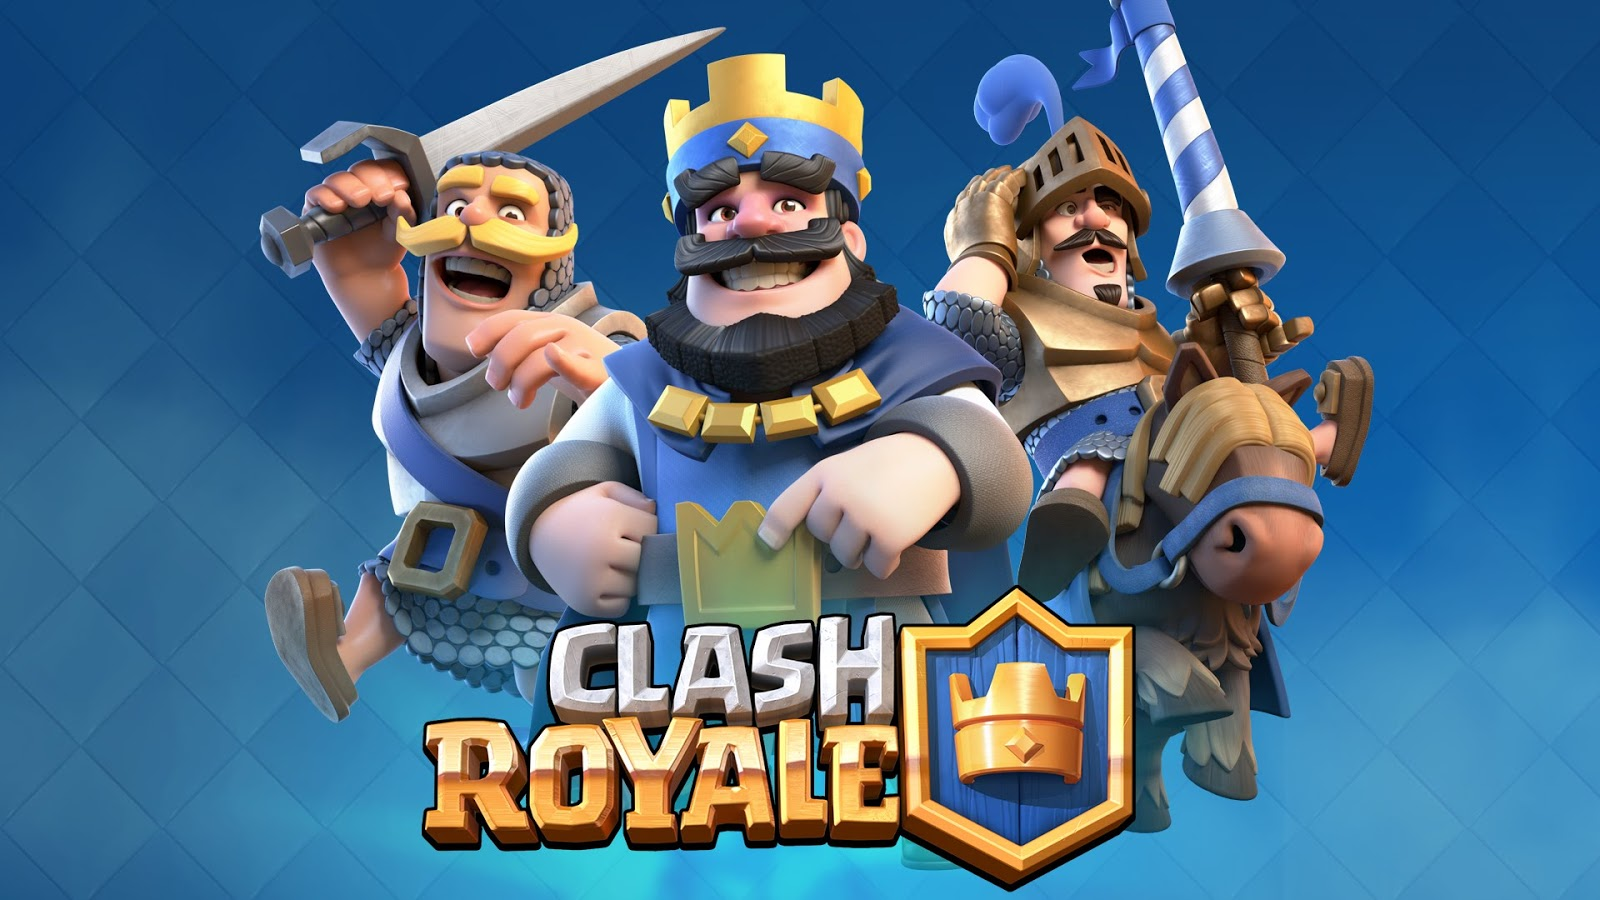 Android Emulator untuk Main Clash Royale di PC